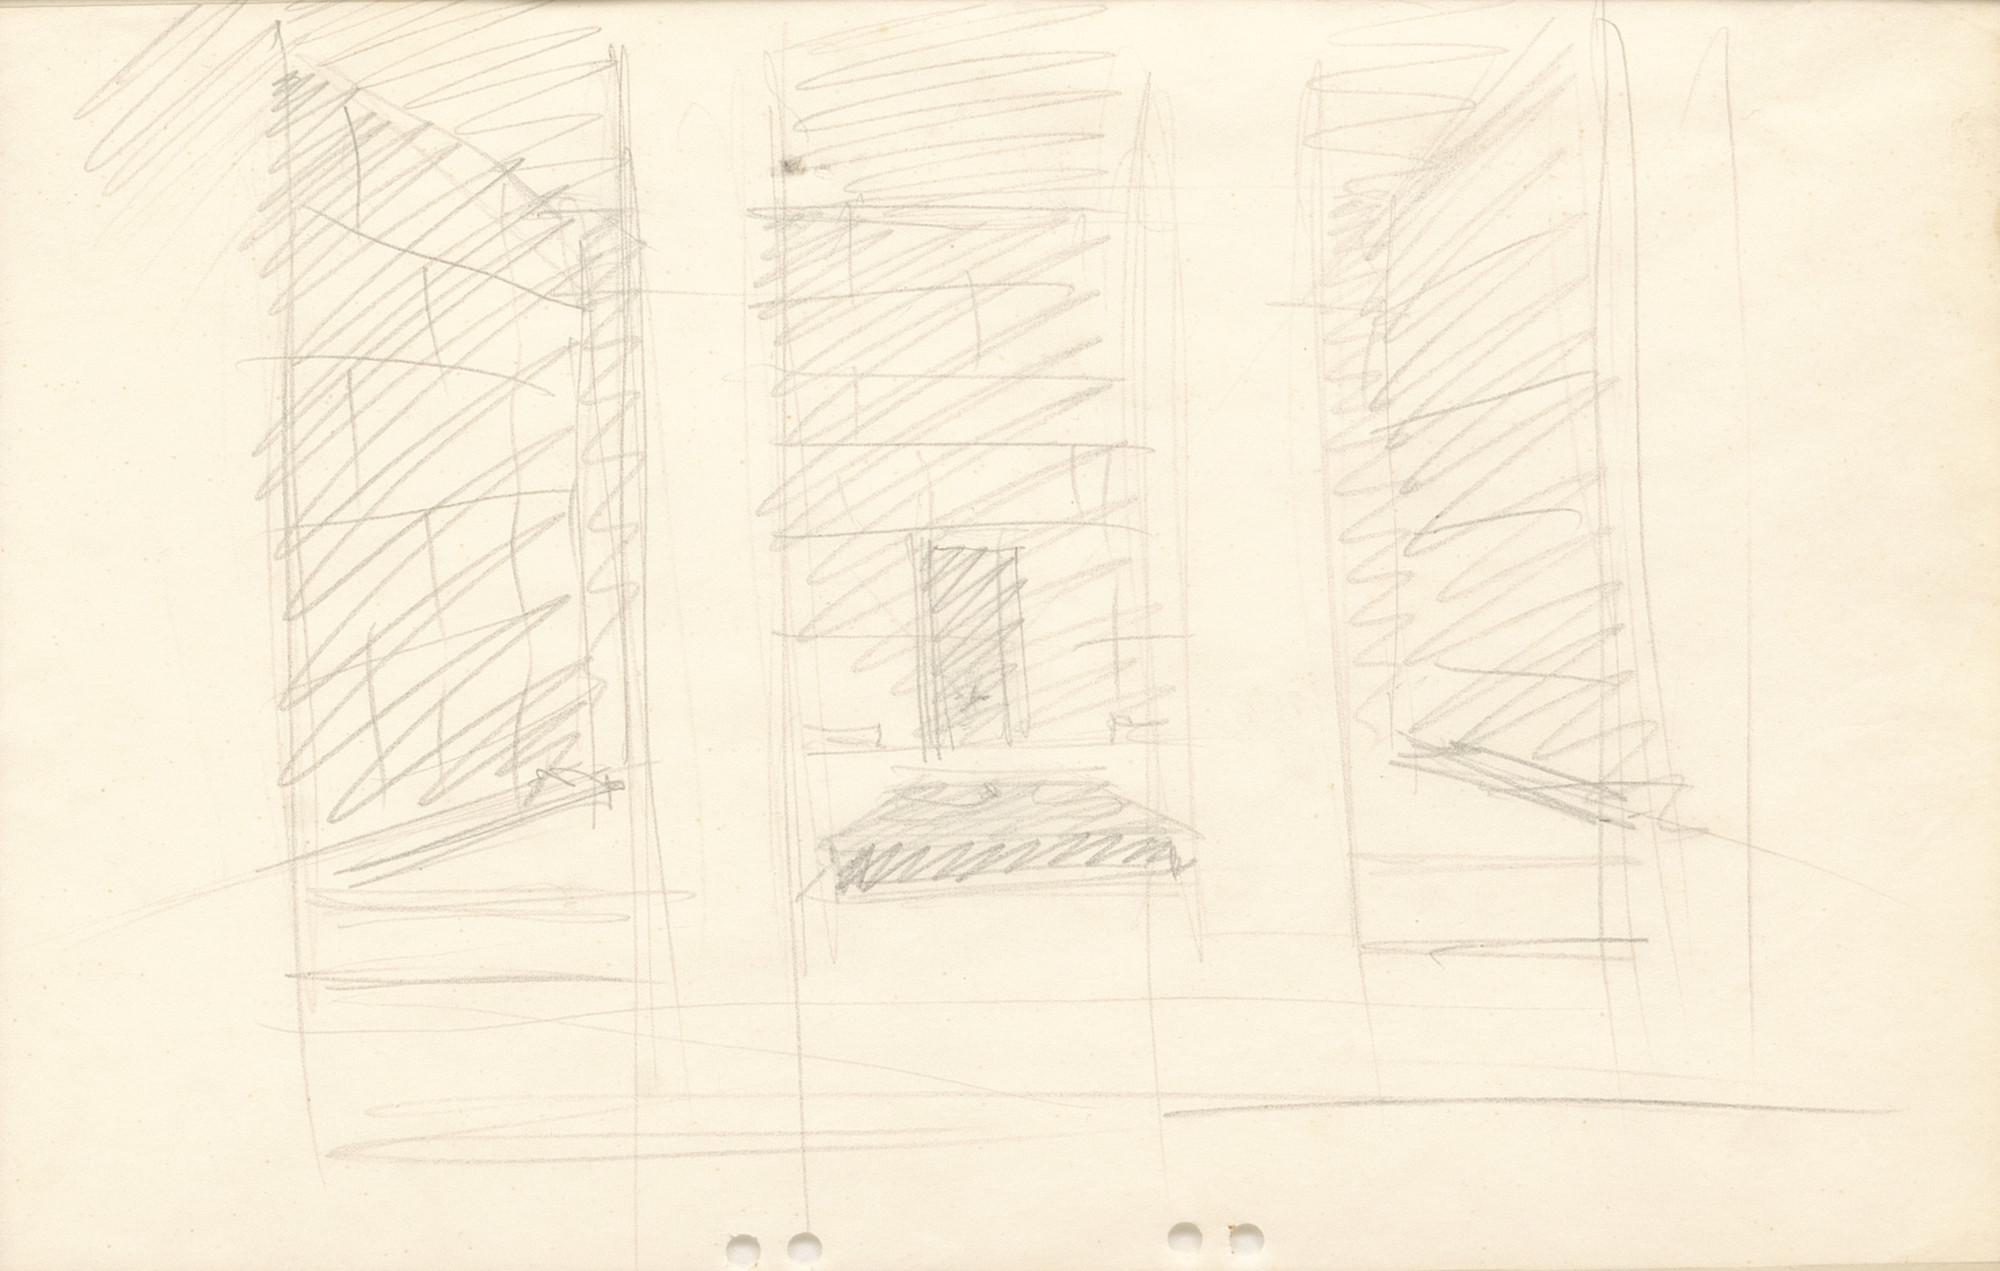 Ludwig Mies van der Rohe. Neue Wache War Memorial Project, Berlin-Mitte, Germany, Sketch interior perspective view.. 1930